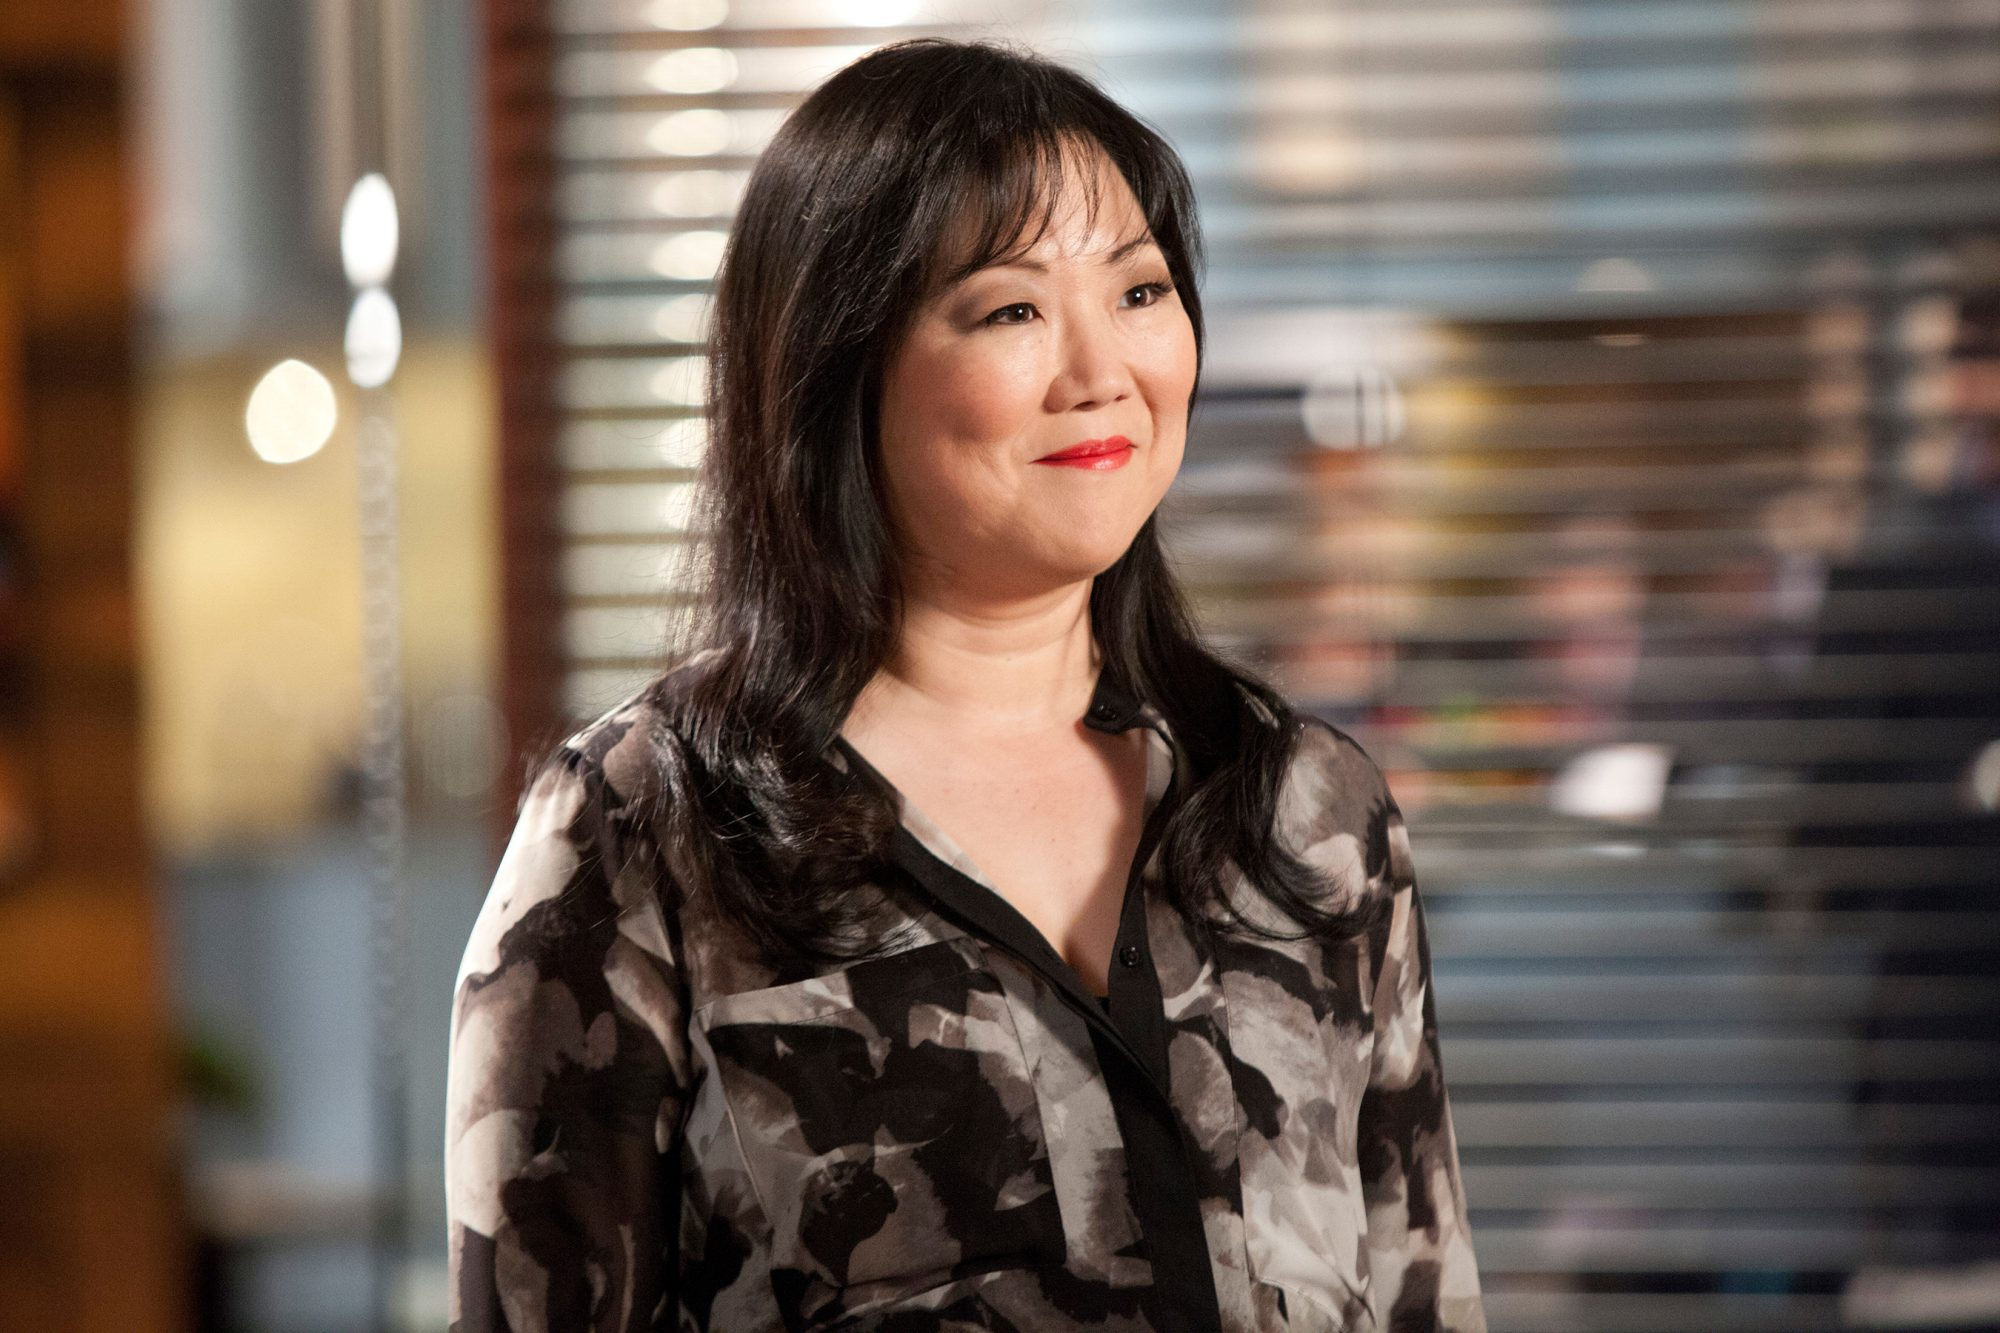 DROP DEAD DIVA, Margaret Cho in 'Soulmates' (Season 6, Episode 2, aired March 23, 2014). ph: